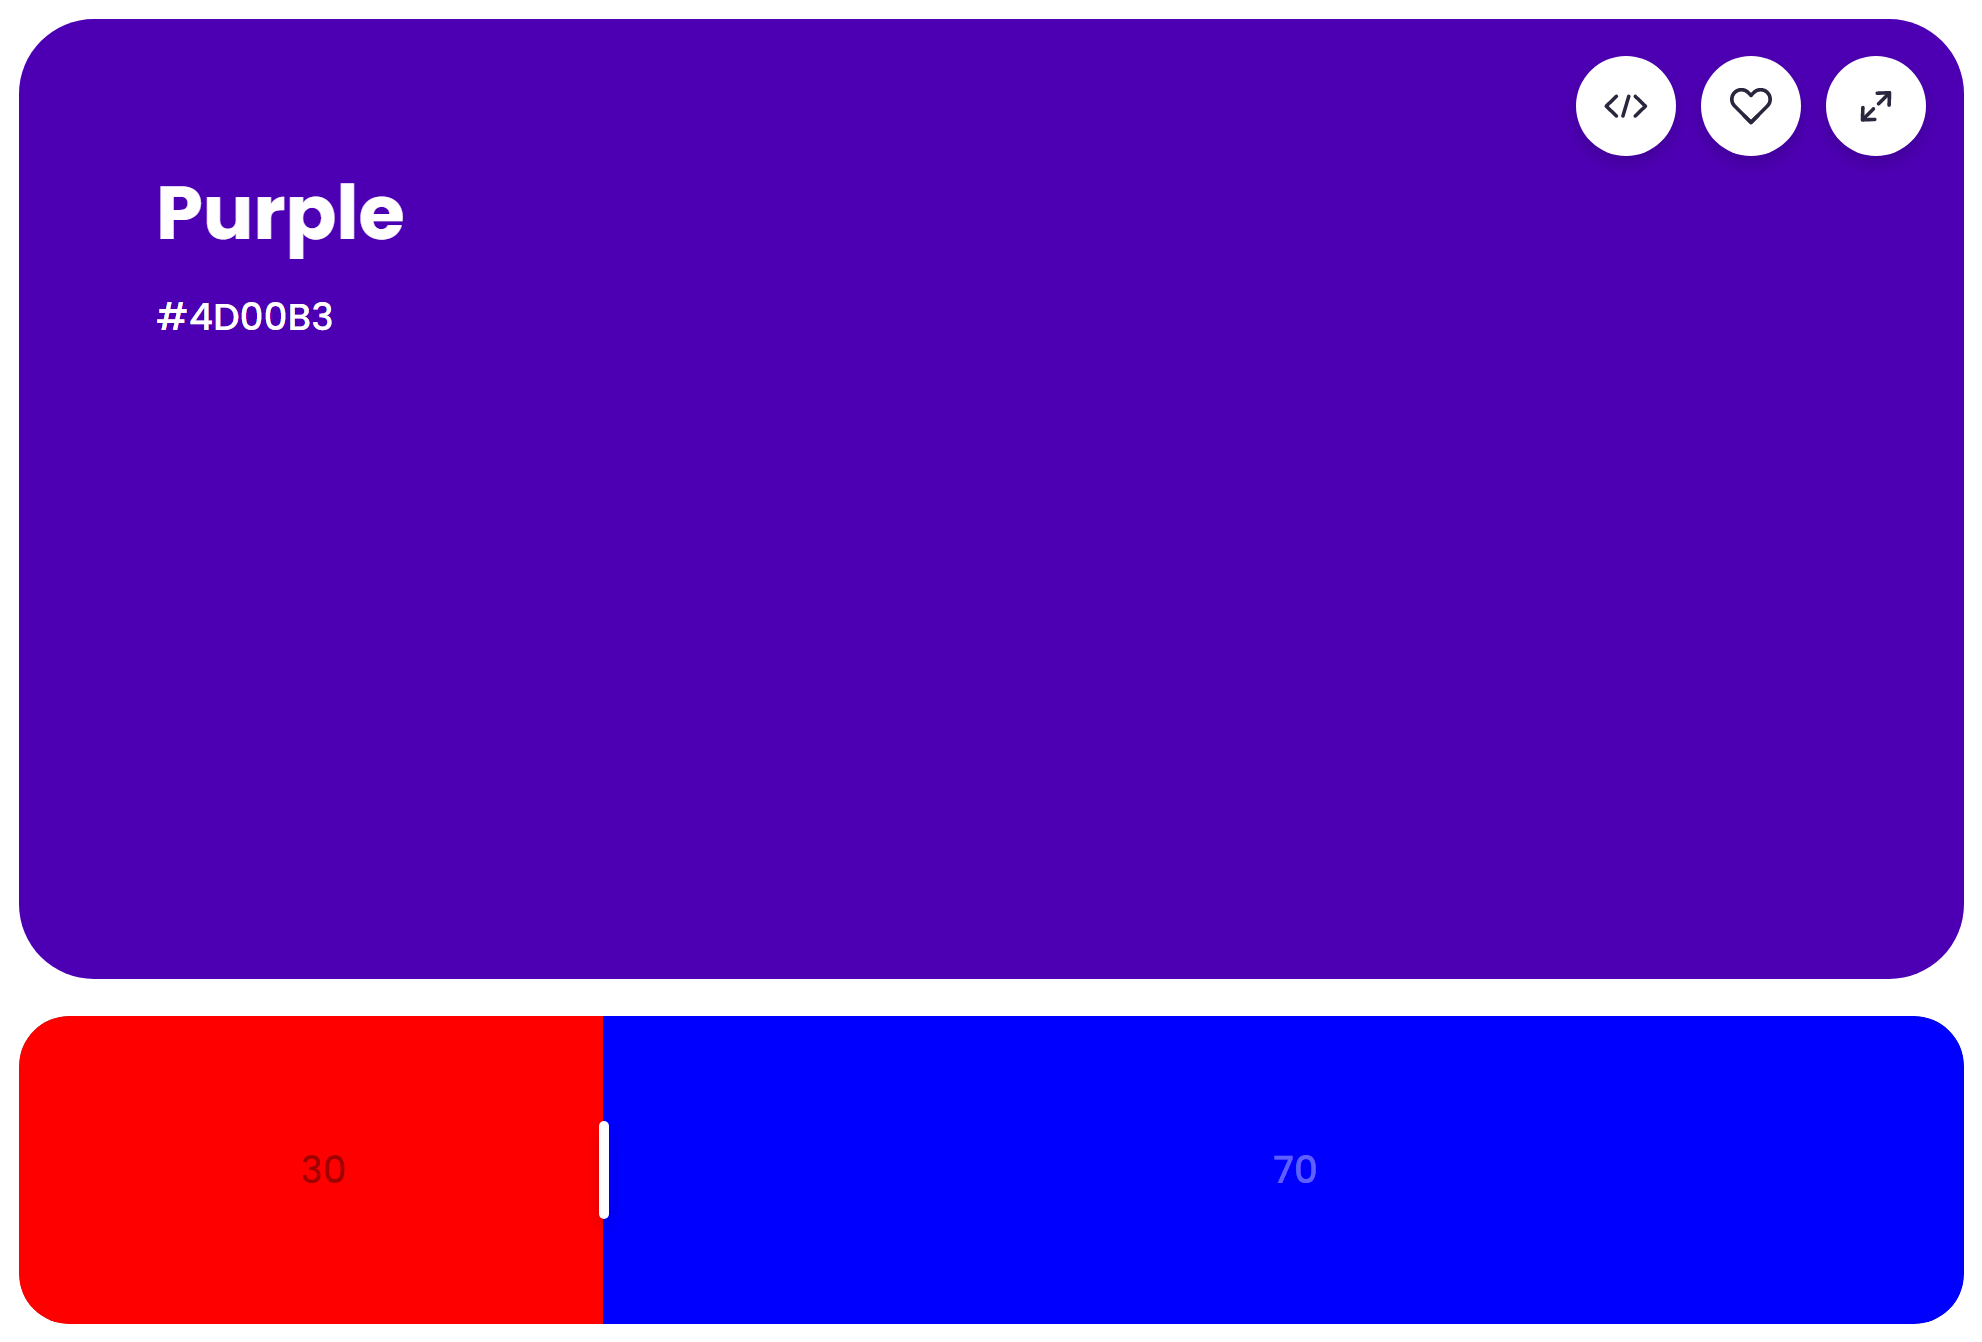 What Does Red and Blue Make? Mixing result of 30% red and 70% blue: Purple